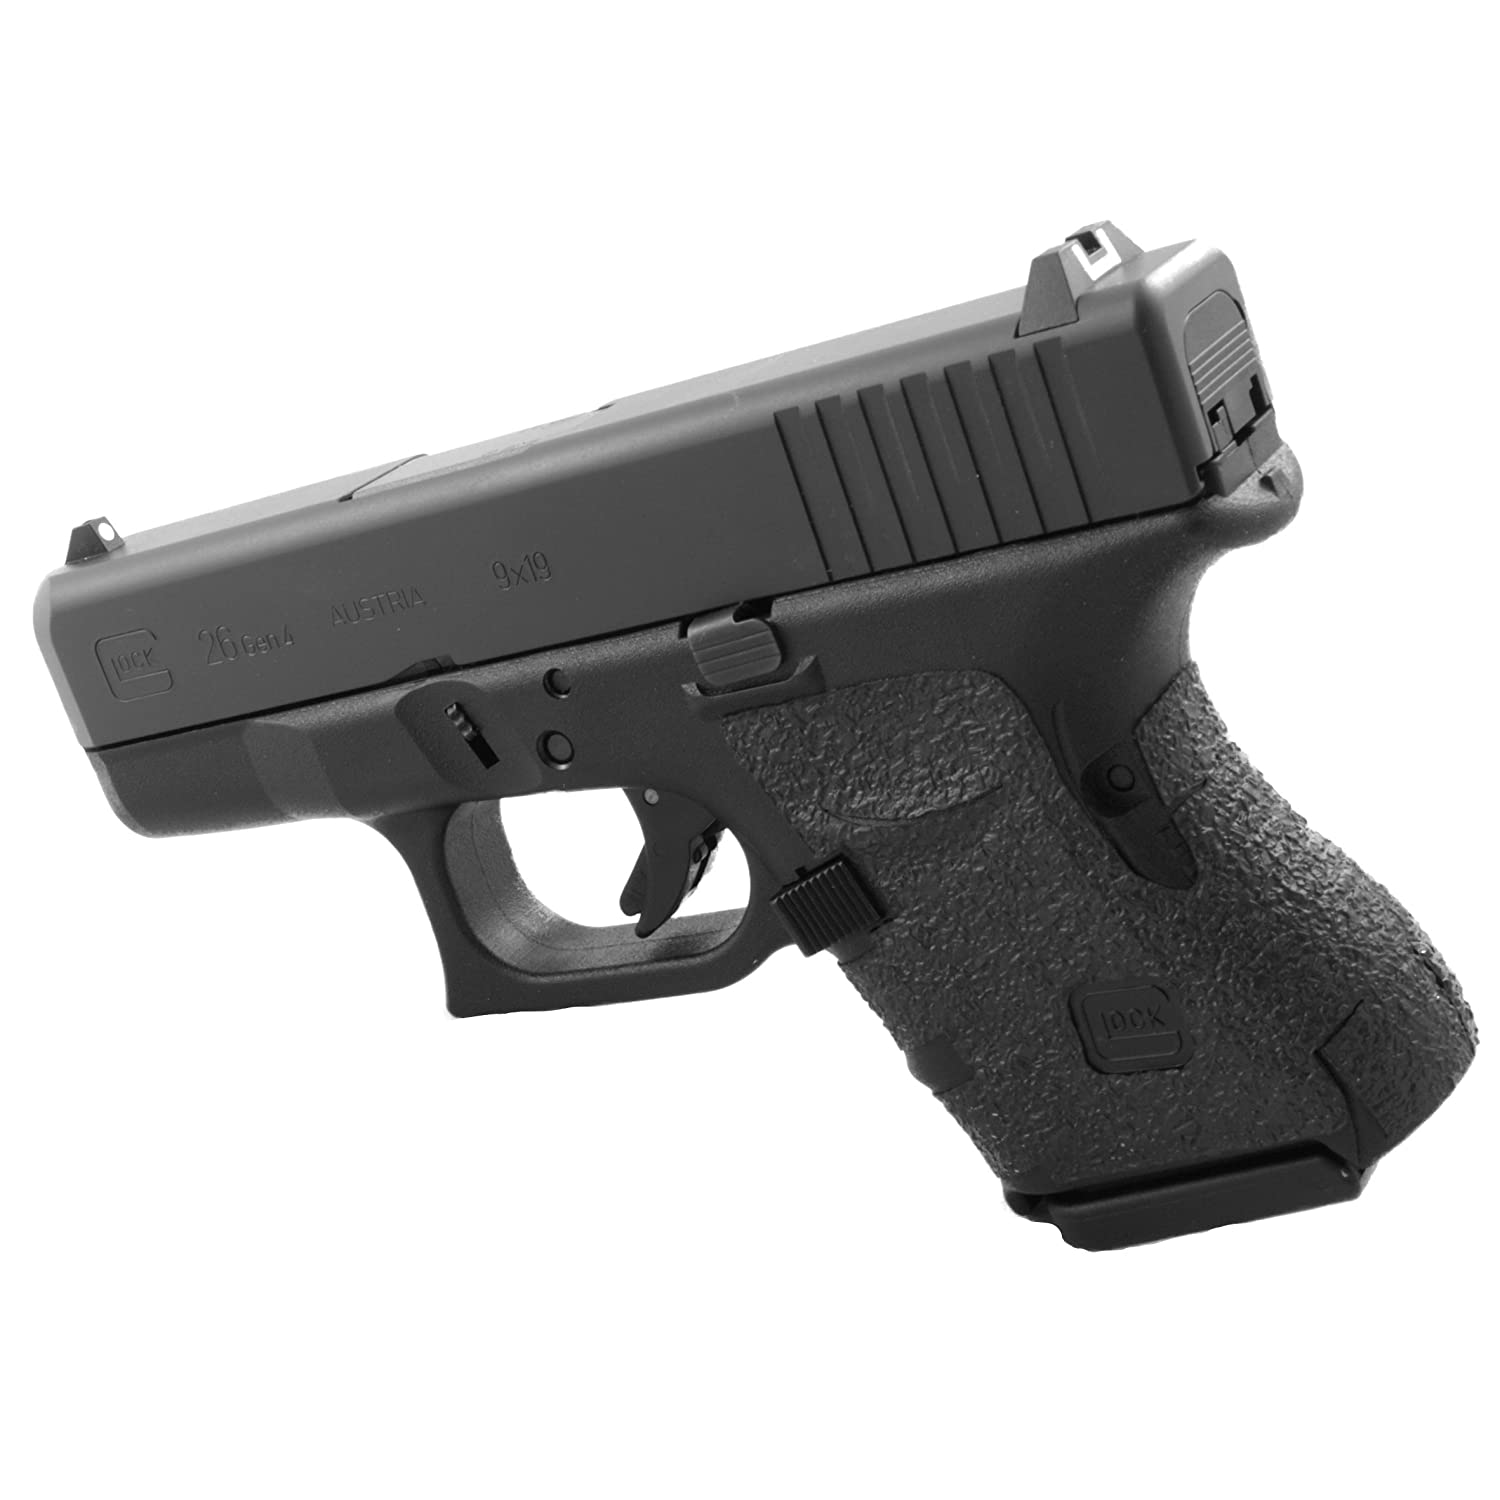 Amazon.com : TALON Grips for Glock 26, 27, 28, 33, 39 (Pre Gen 4 ...